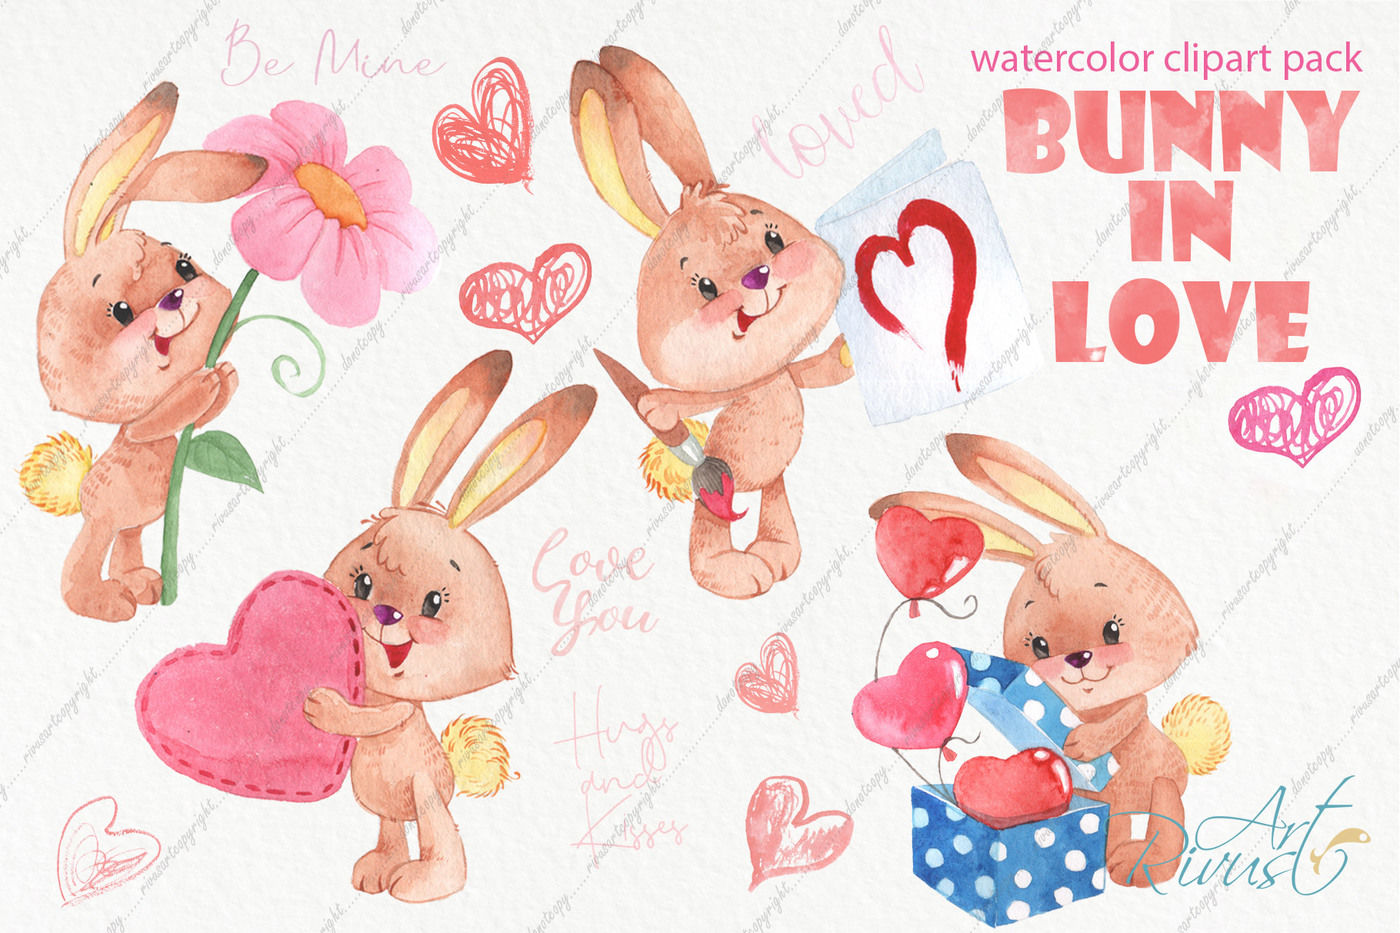 Bunny rules clipart clip art royalty free library Watercolor bunny and hearts clip art pack By Rivus Art ... clip art royalty free library